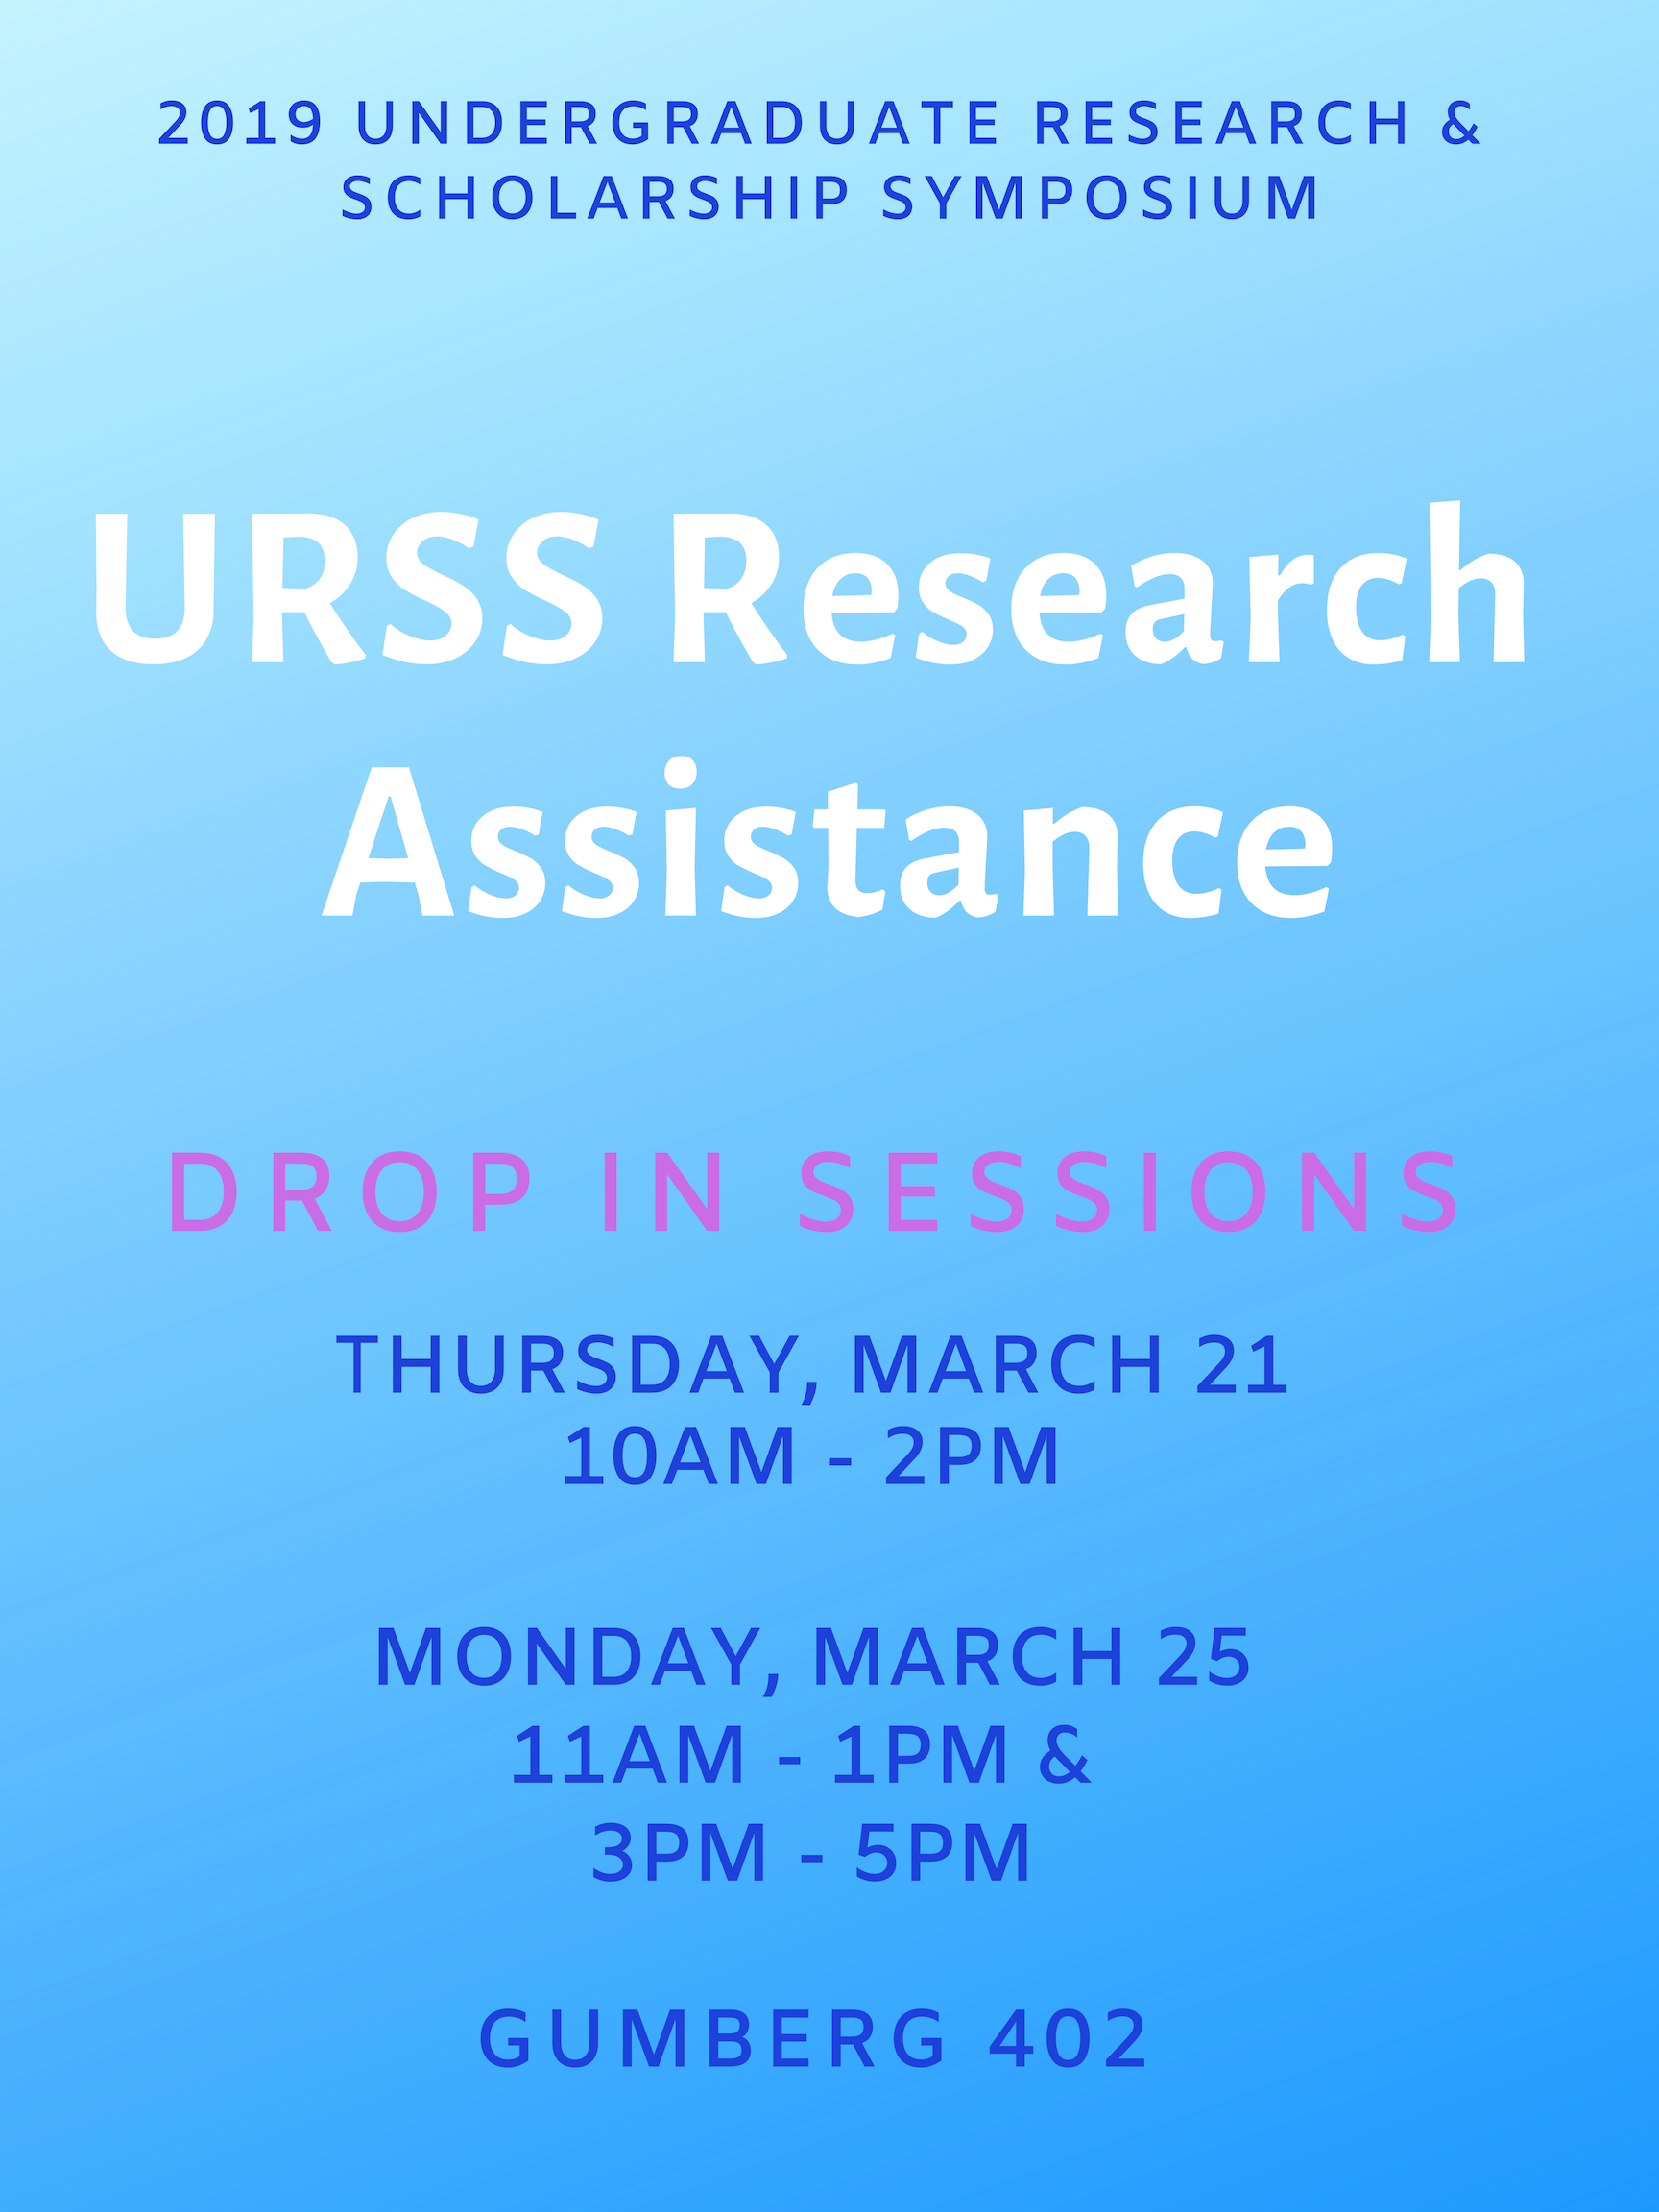 URSS Research Assistance Drop-in Session